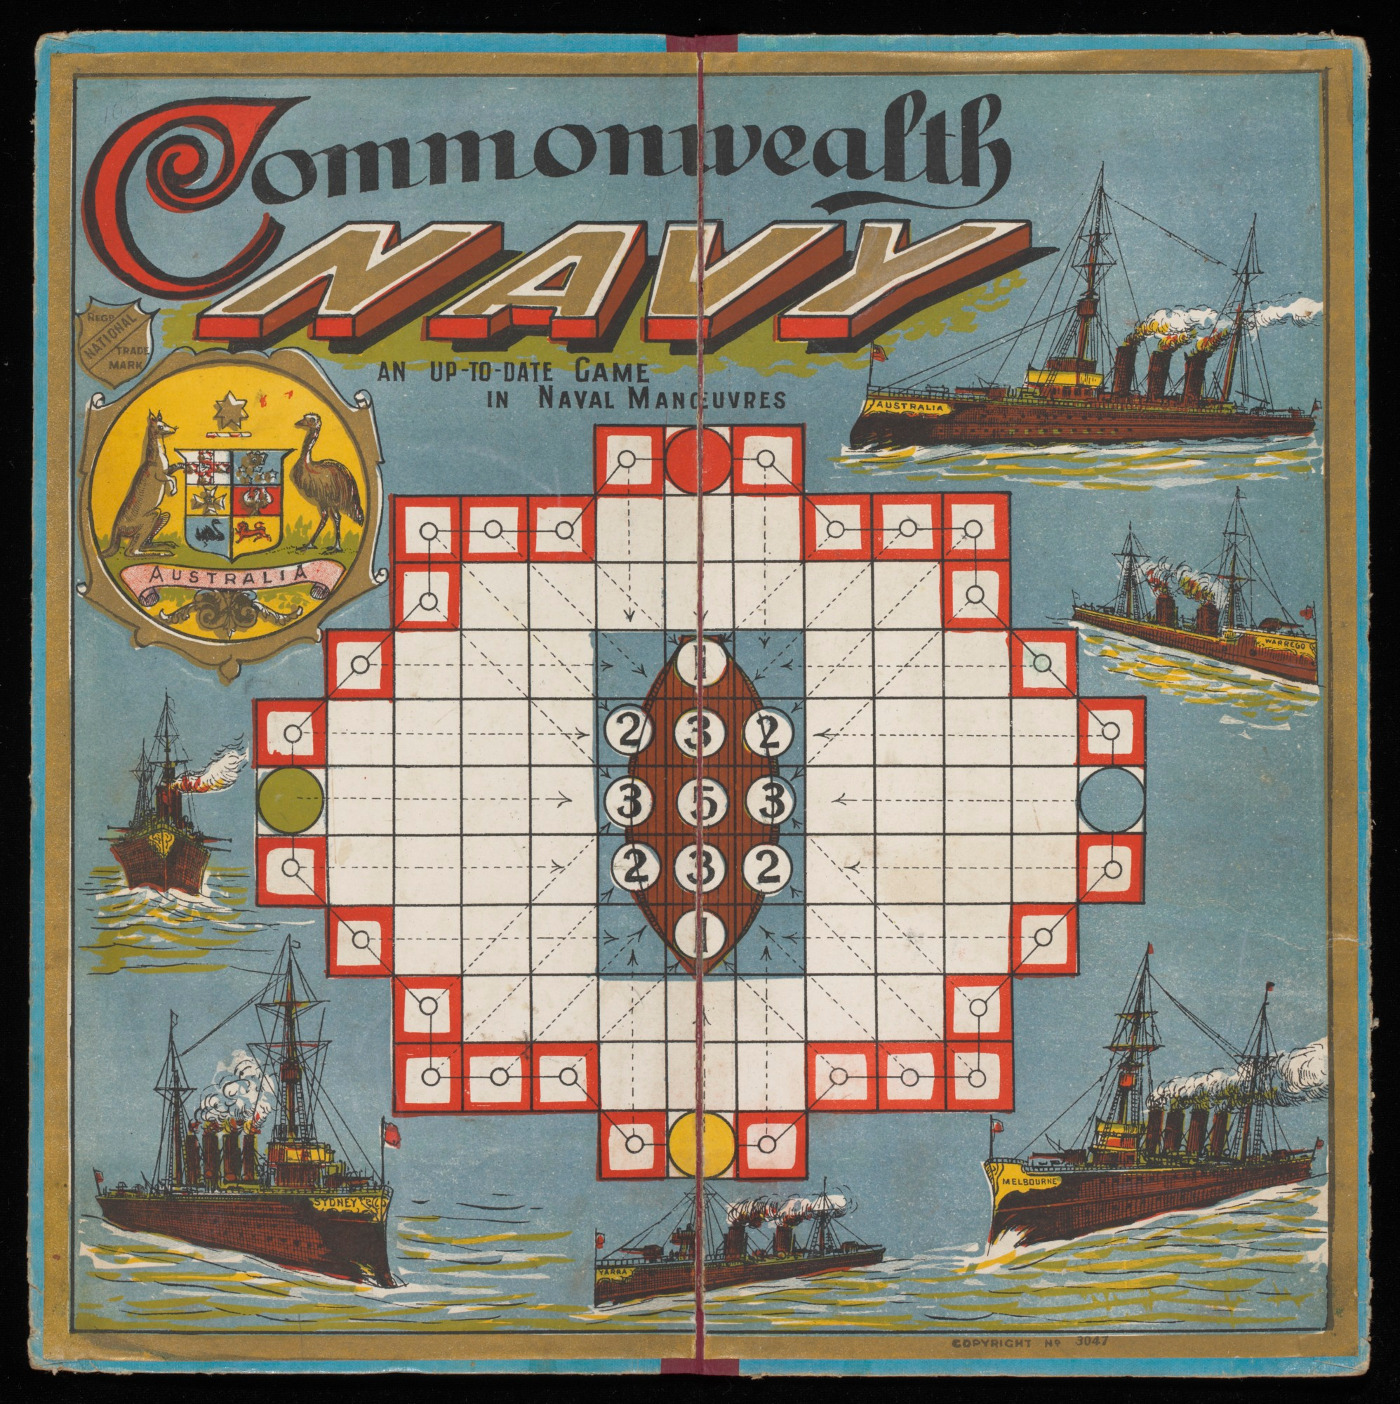 Square game board titled 'Commonwealth Navy', with white game squares at centre. Images of various war ships surround the playing space. - click to view larger image